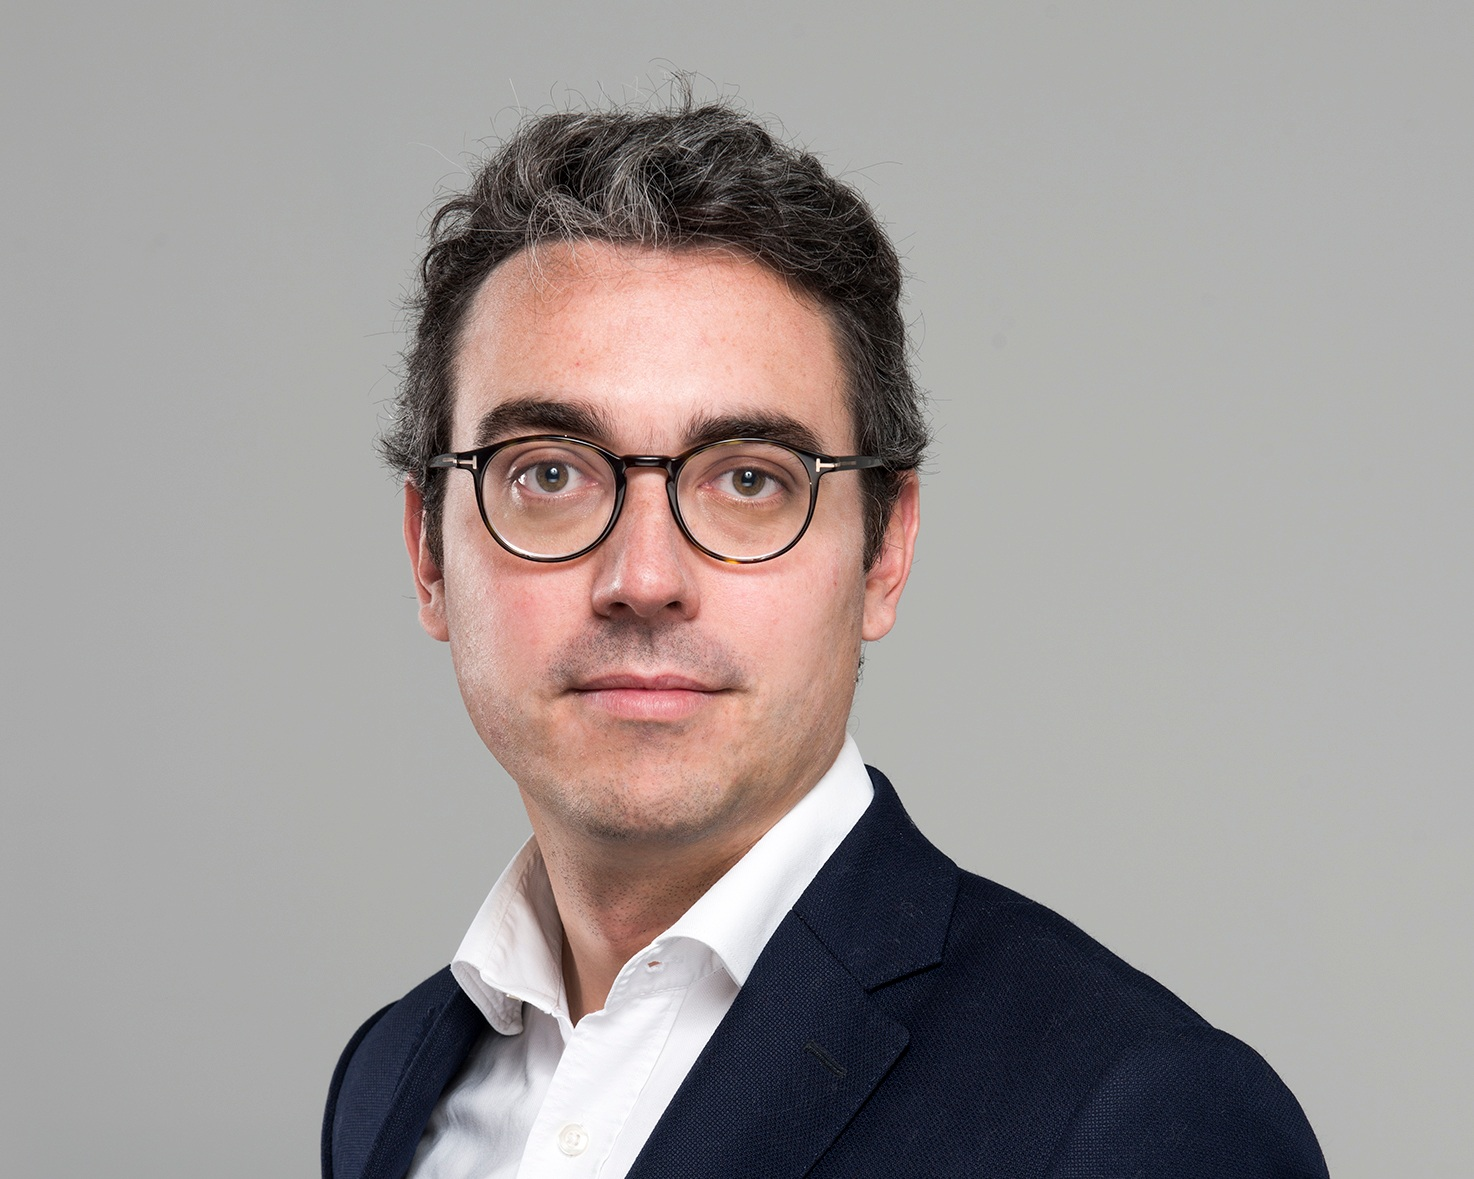 Worked at ING & Goetzpartners within the LBO and M&A teams  Henri co-founded Apparius in 2011